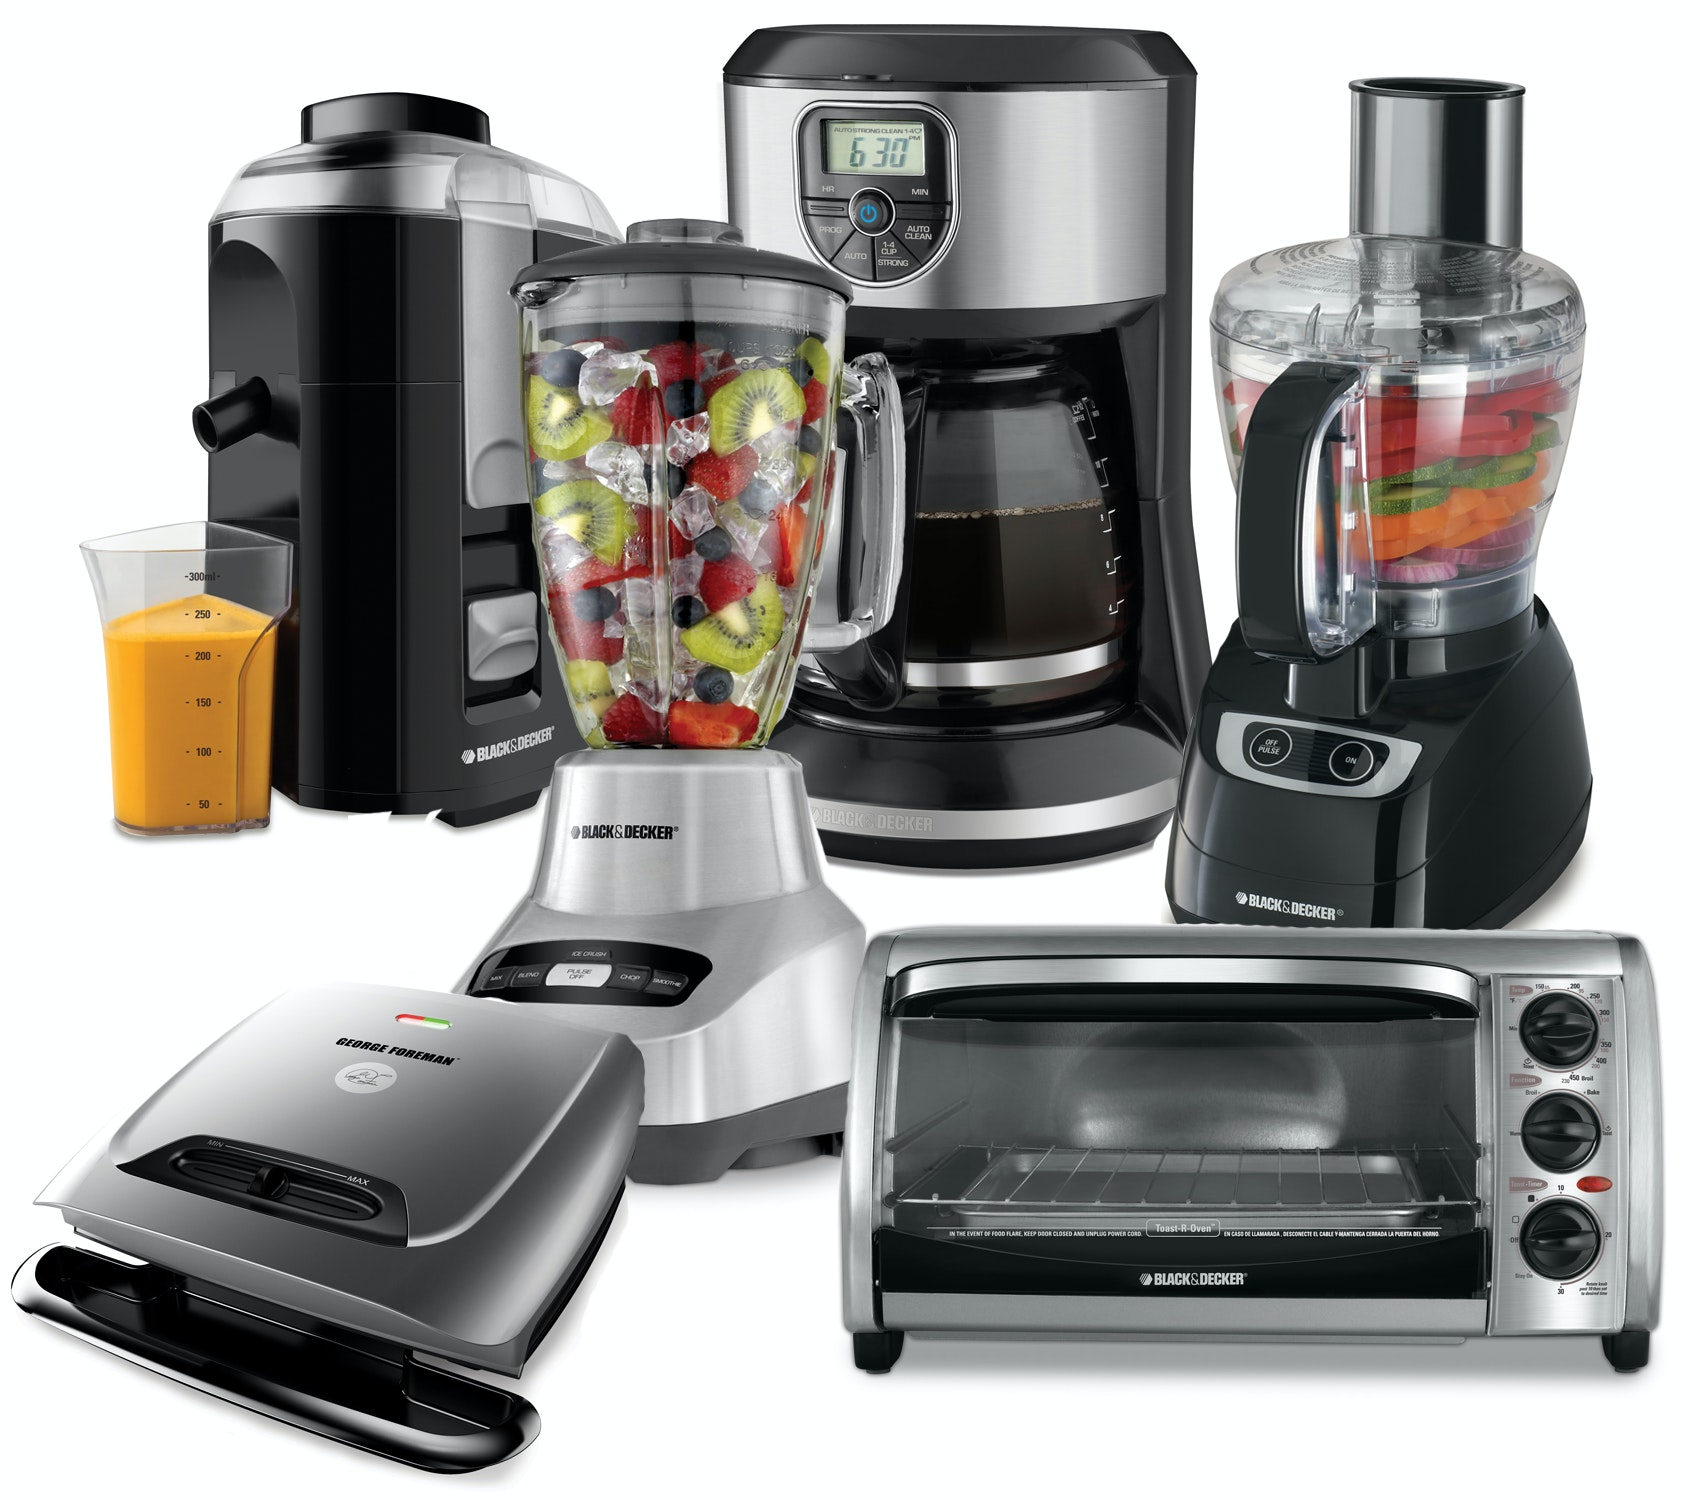 New Year Kitchen Makeover Prize Package from George Foreman and Black & Decker! sweepstakes